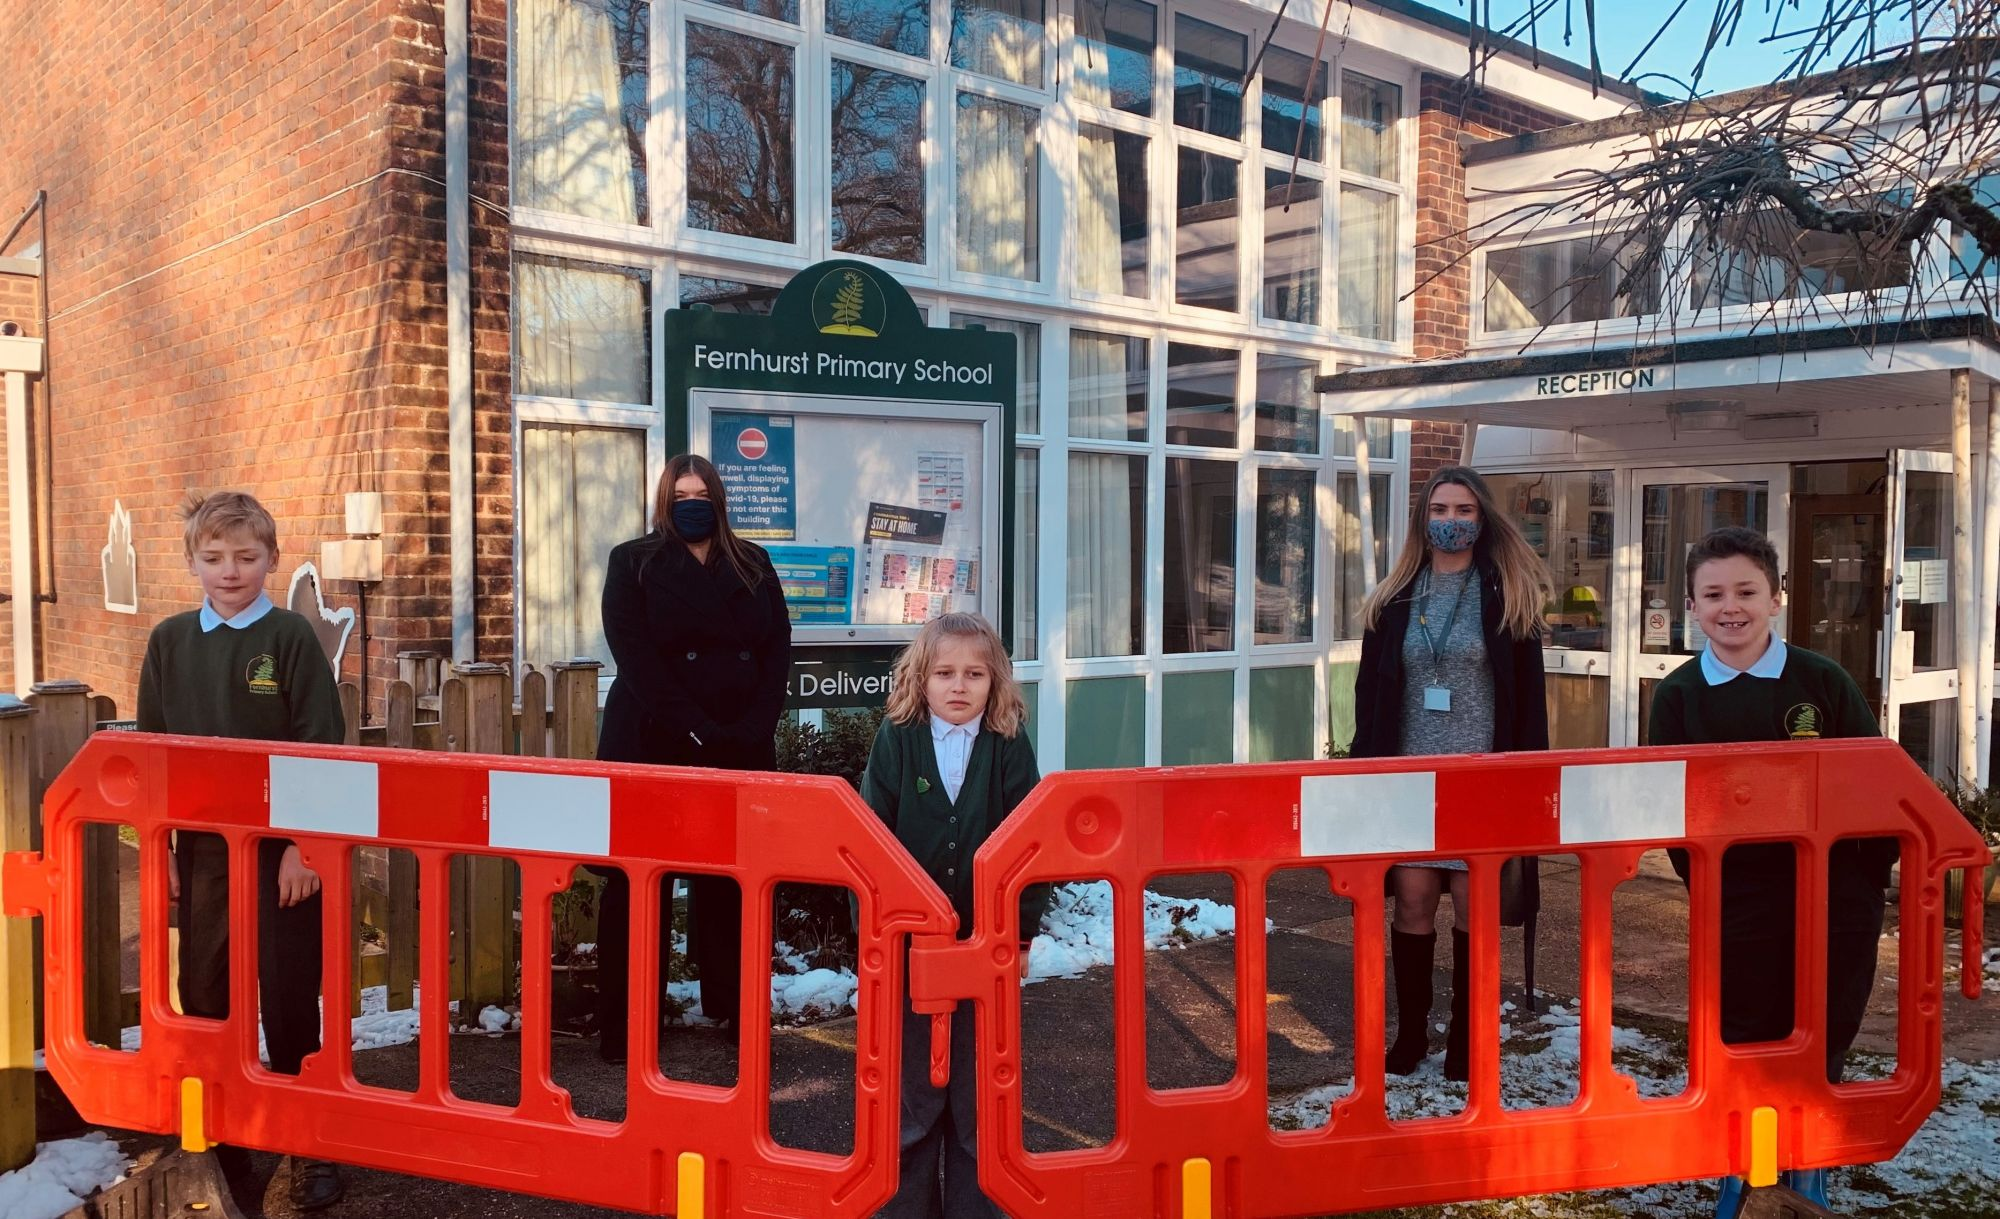 THANK-YOU: Children at Fernhurst Primary School in Fernhurst, Haslemere, can play more safely in the playground during the pandemic, thanks to 15 social-distancing barriers donated by Trant Engineering. Headteacher Jen Thornton is pictured left with Emma Quinnell-Spencer, a Compliance Advisor at Trant Engineering, along with Emma's son Stuart, right, Emilia and Arthur.